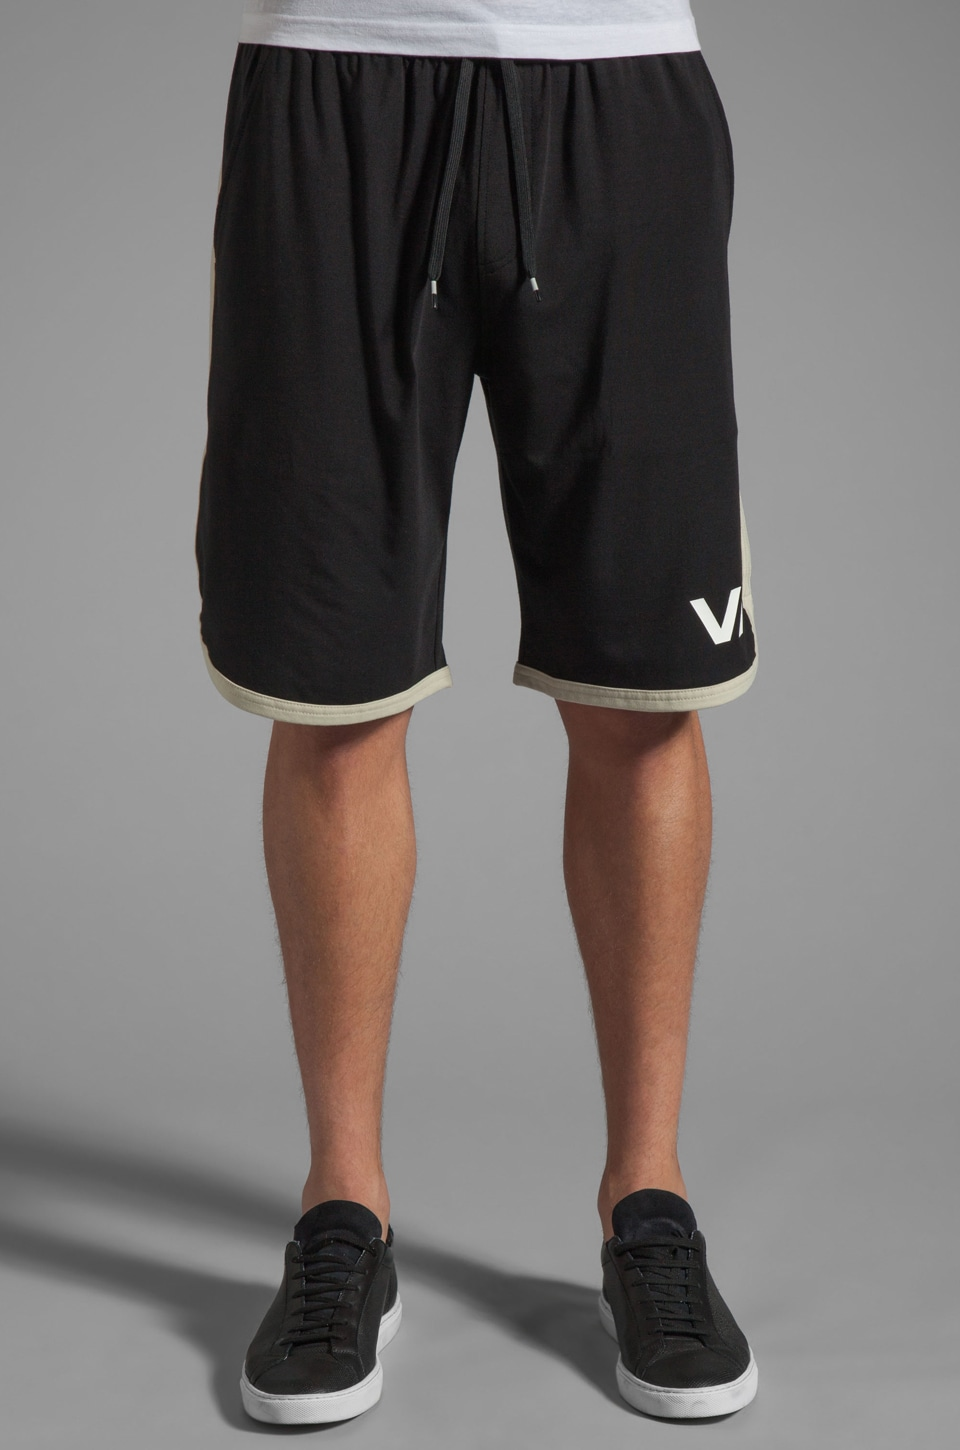 RVCA VA Sport Short in Black/Stone